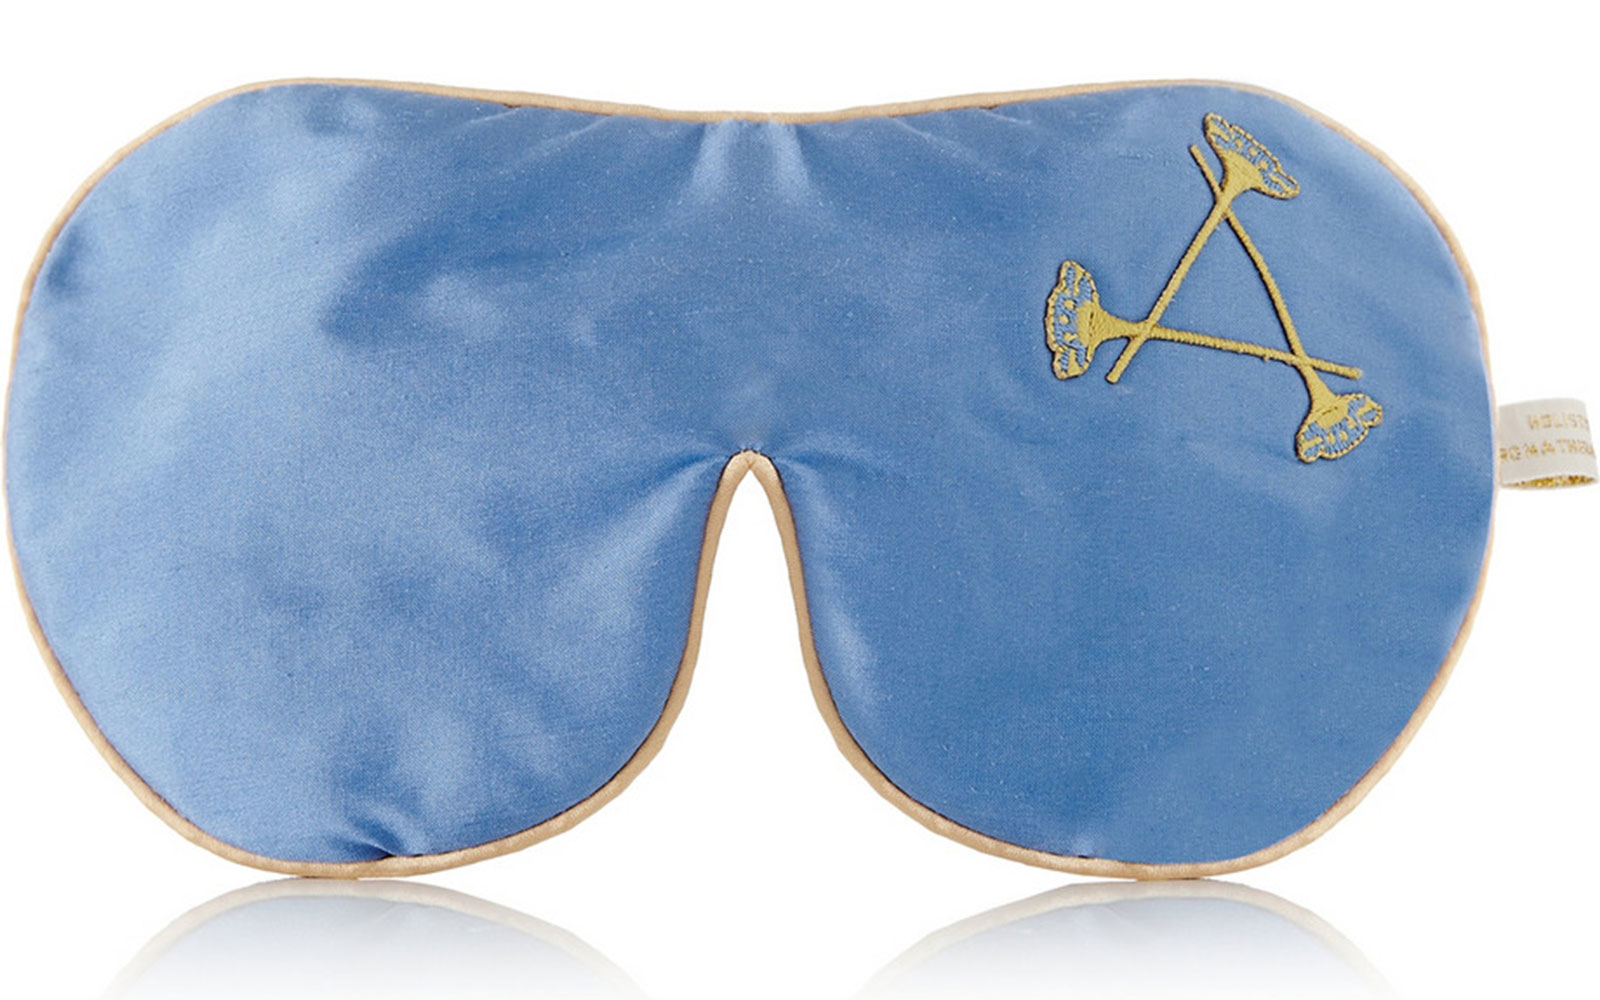 Aromatherapy Associates' Eye Mask